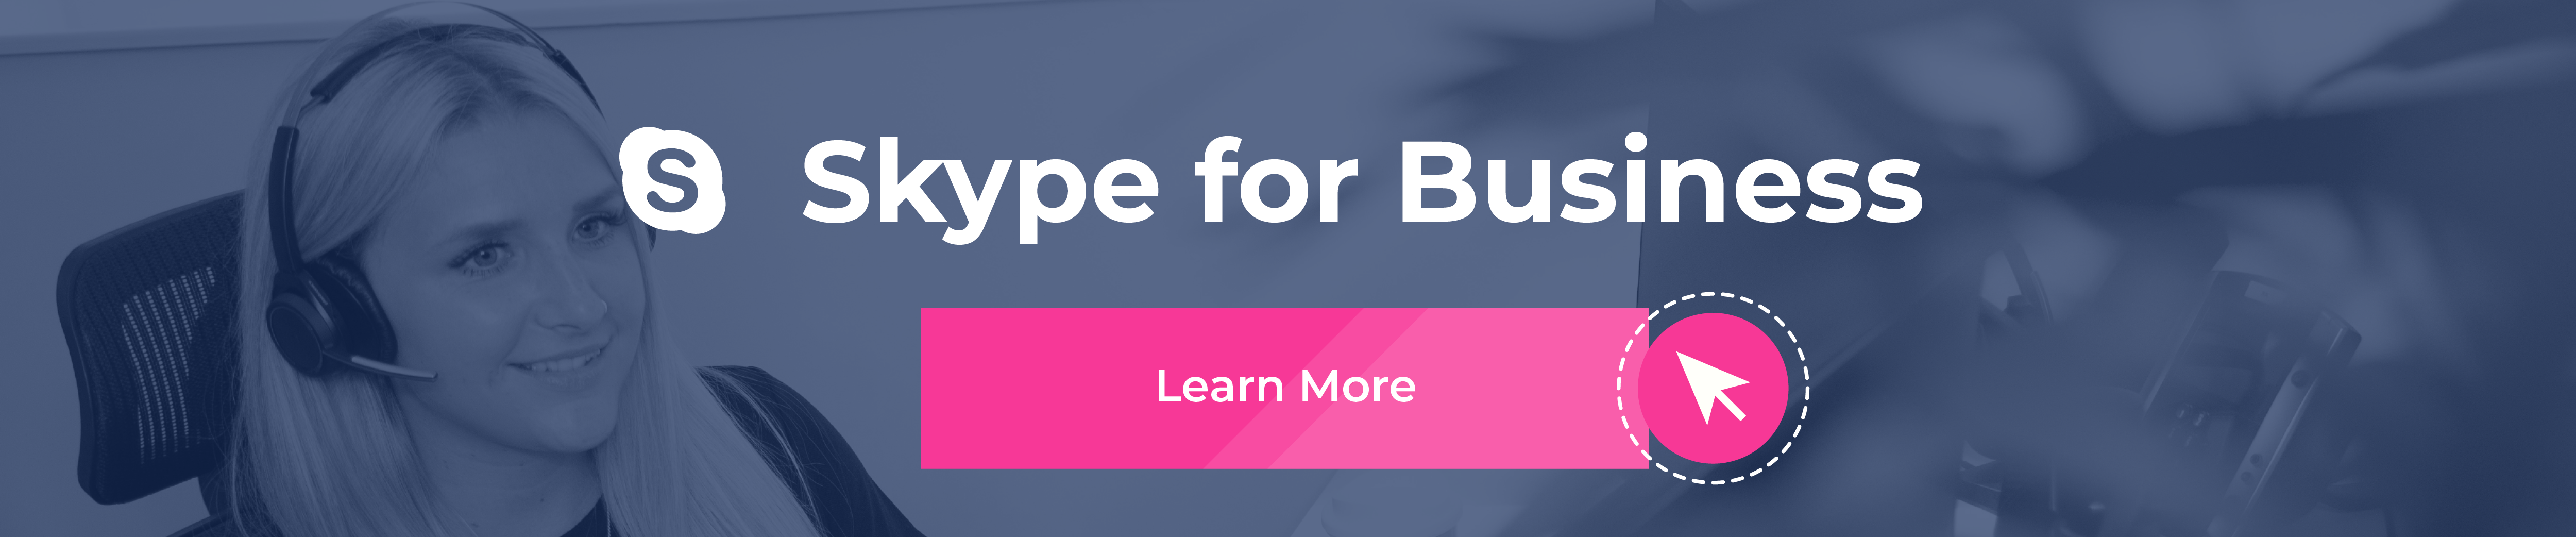 Skype for Business CTA banner